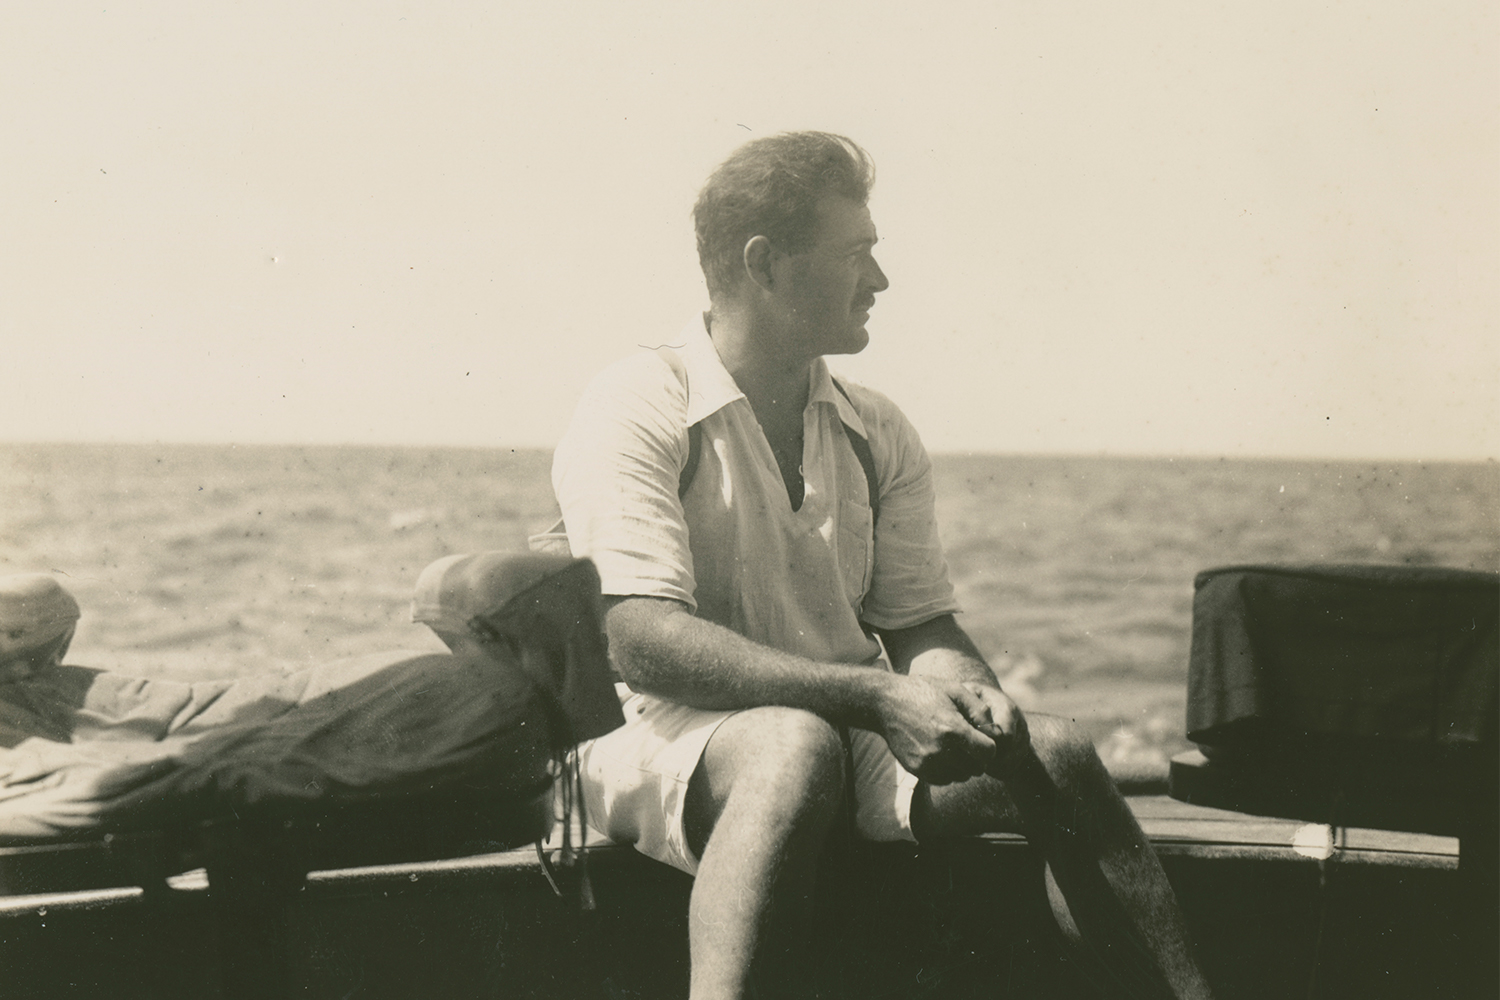 Ernest Hemingway on the fishing boat Anita around 1929